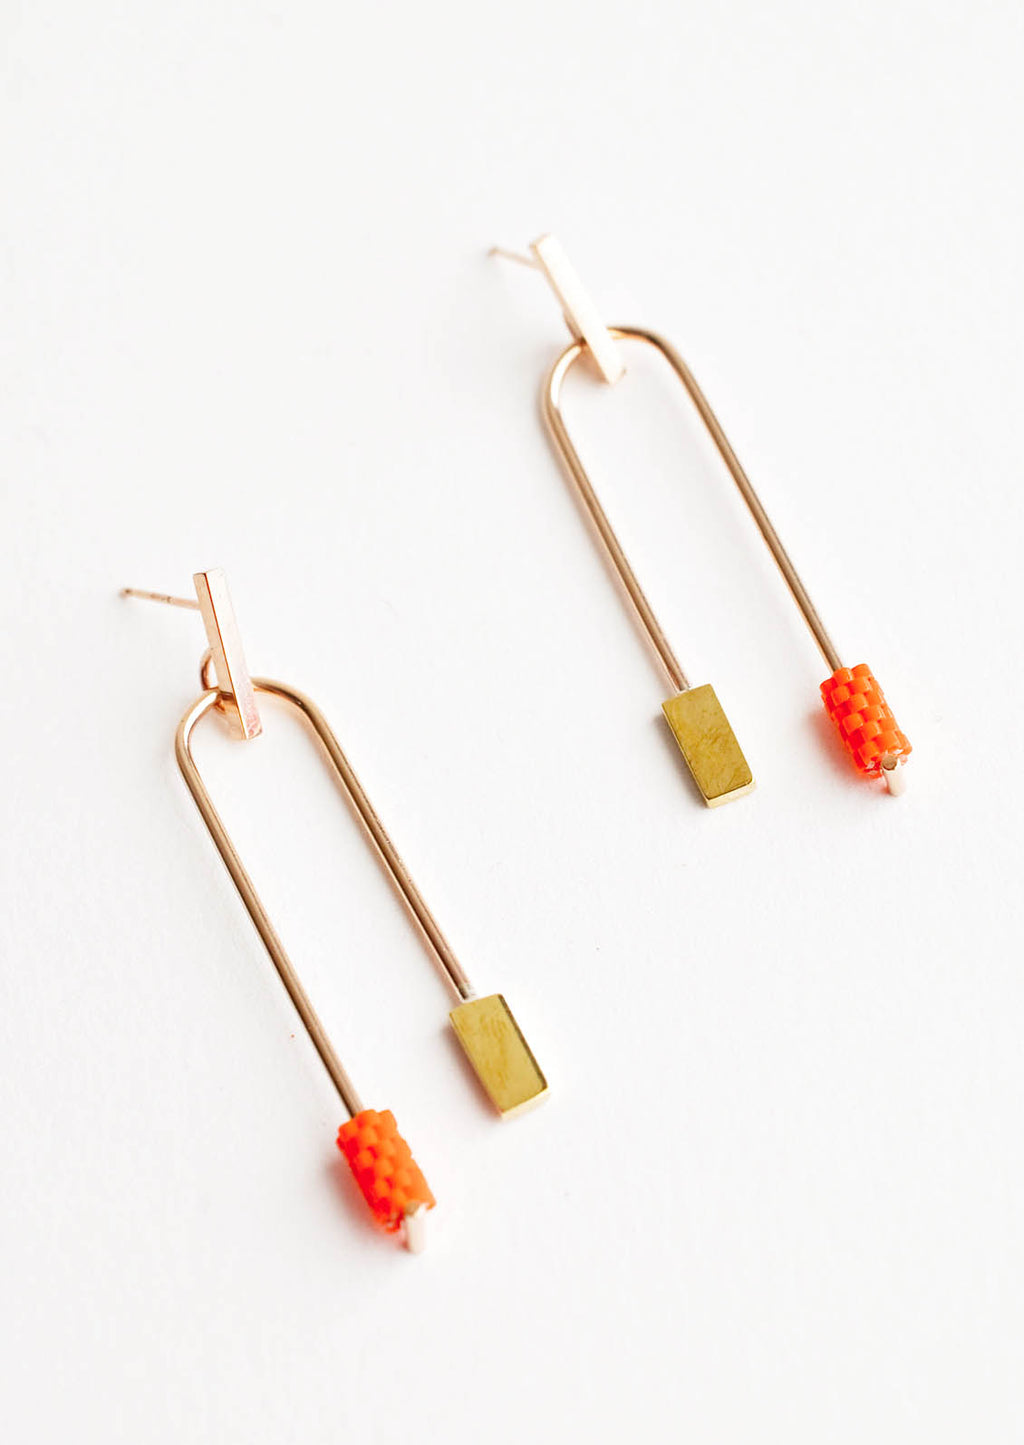 Orange: Post back gold earrings with curved arc featuring one orange beaded end and one square gold end.